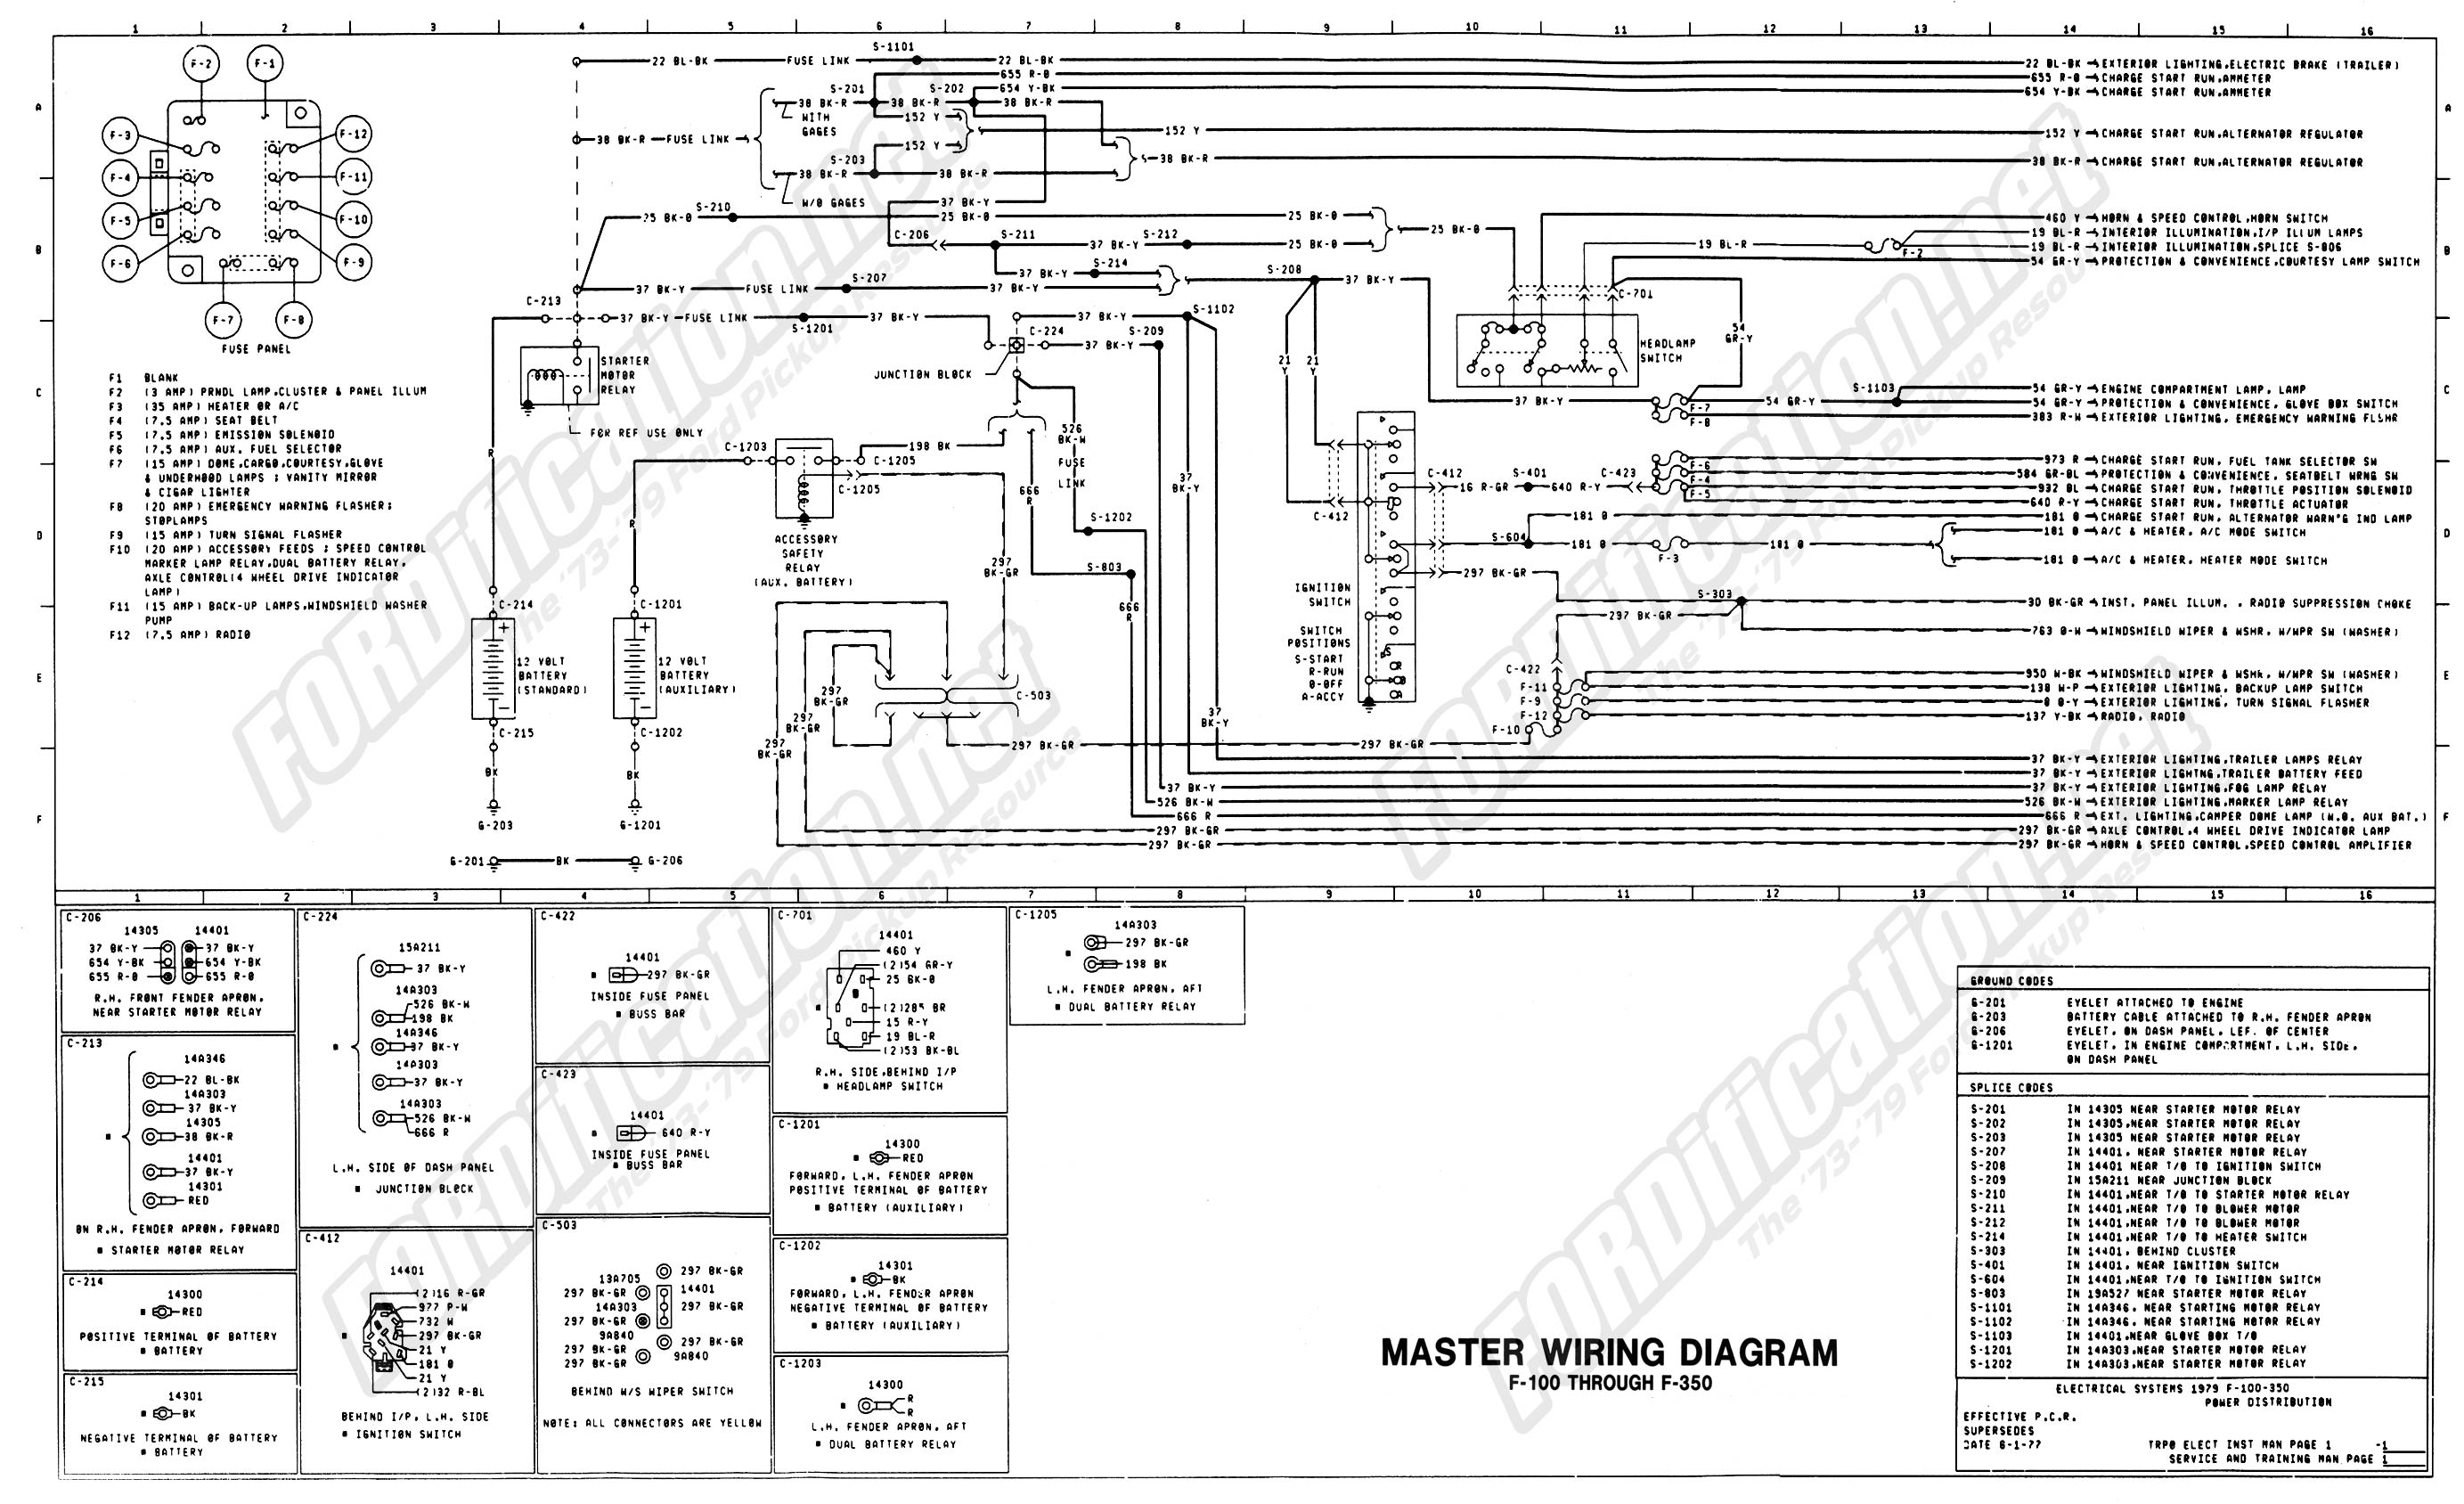 Wiring Master Of on 2000 Volvo S70 Engine Diagram